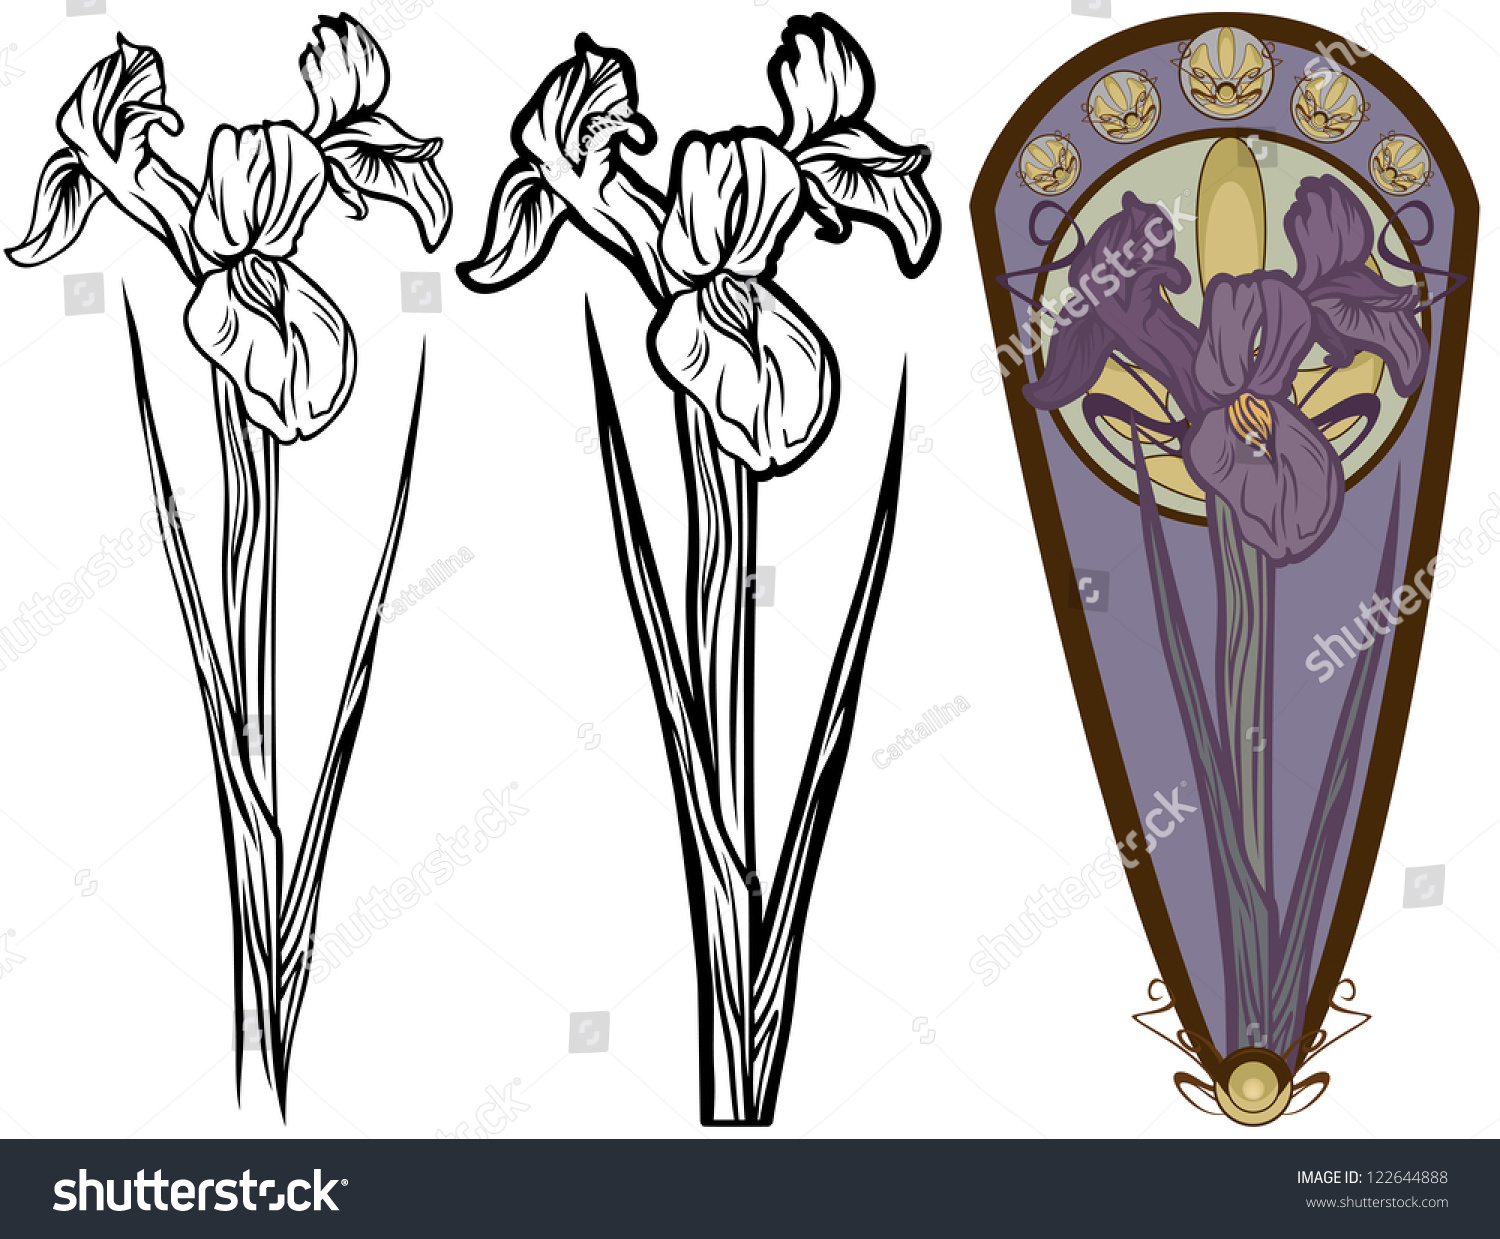 Raster art nouveau style iris flower stock illustration 122644888 raster art nouveau style iris flower illustration black and white and color versions izmirmasajfo